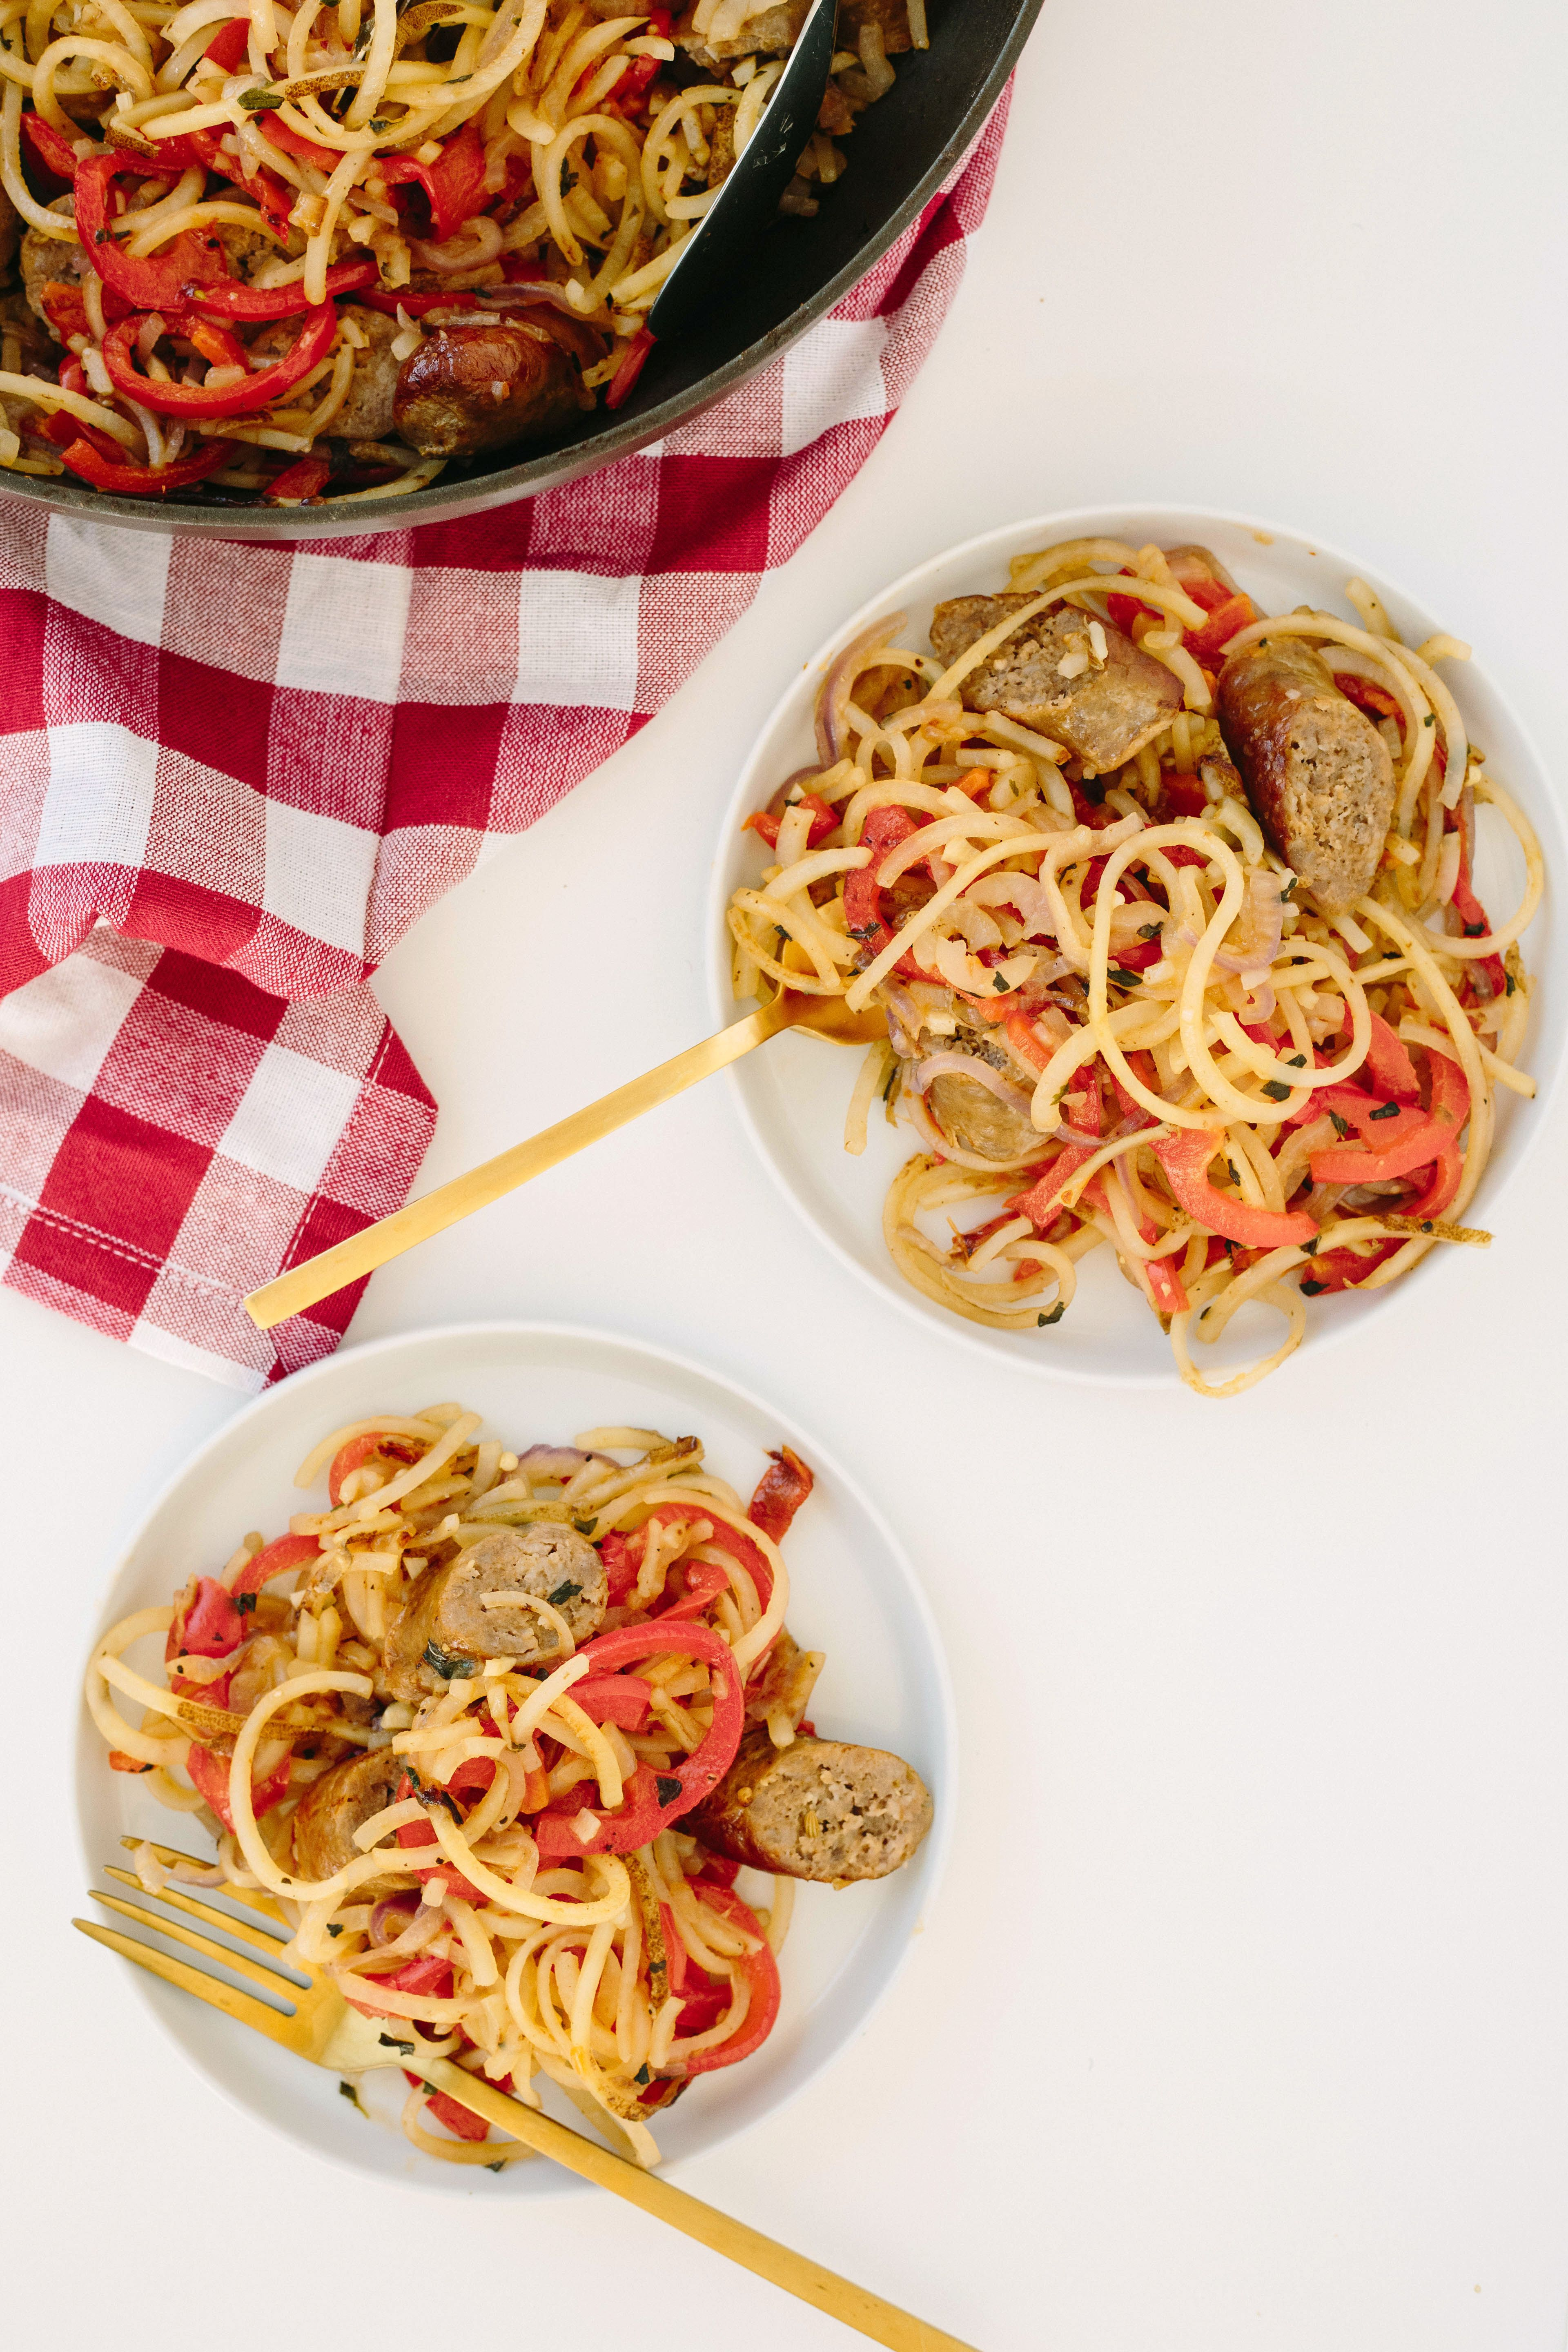 Mom's Spiralized Peppers, Onions, and Potatoes with Sausage - Weight Watchers SmartPoints*: 6 points